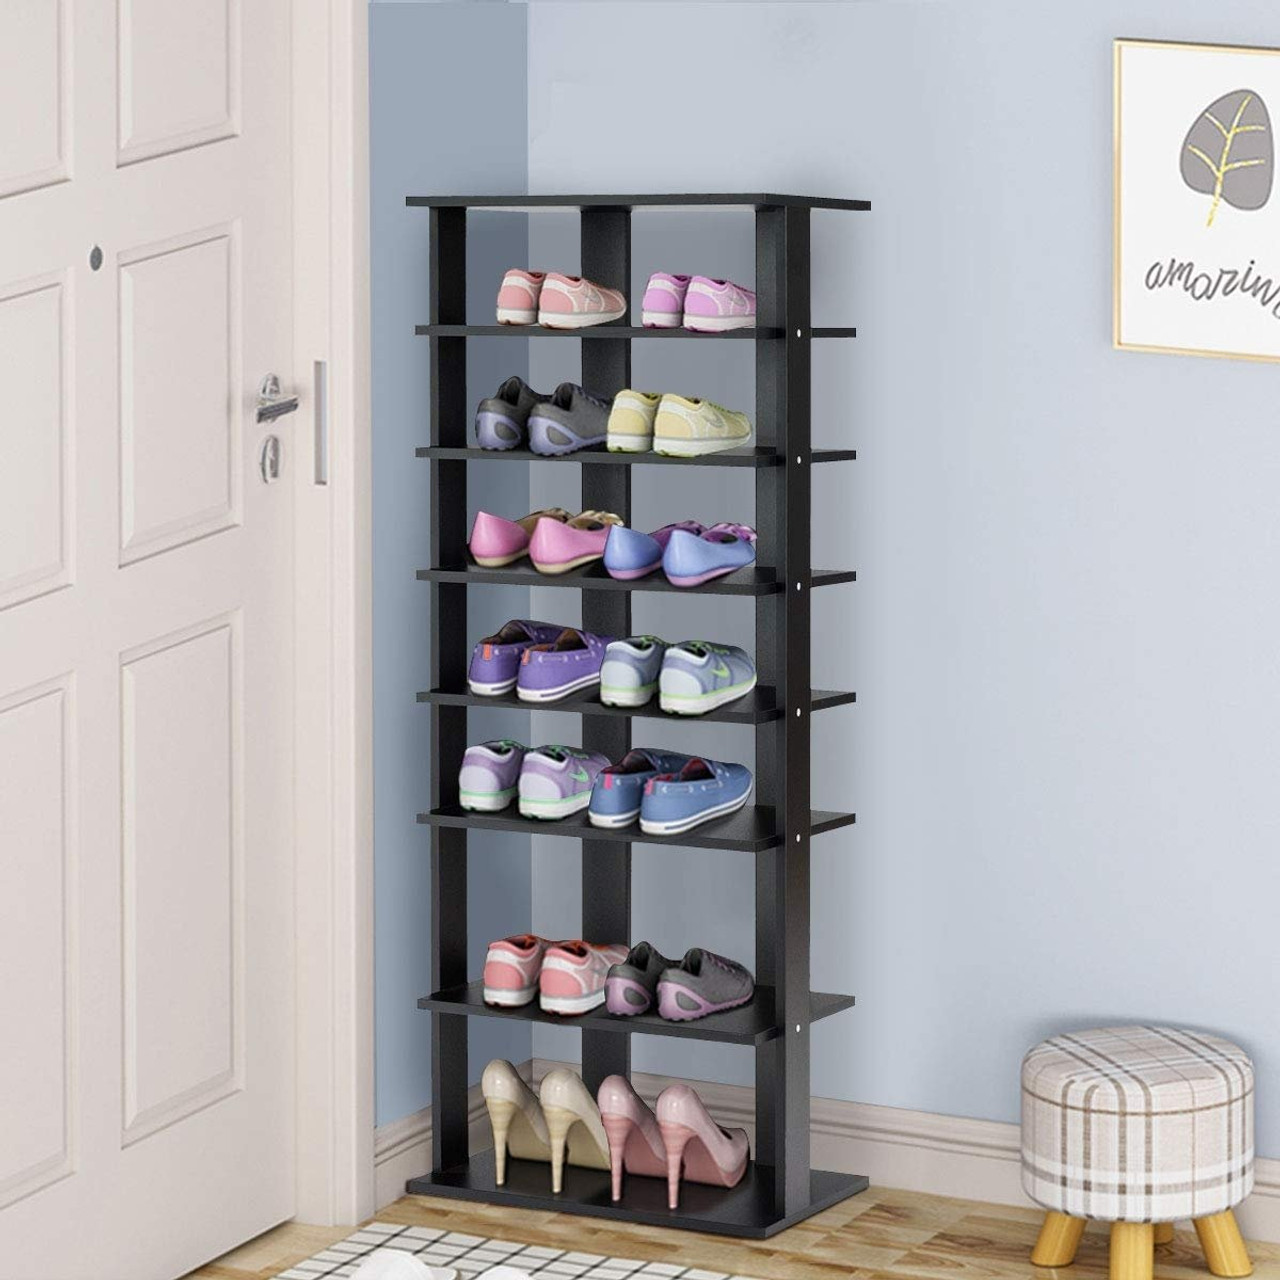 7 Tier Dual Shoe Rack Free Standing Shelves Storage Shelves Concise Black Hw57381bk By Cw